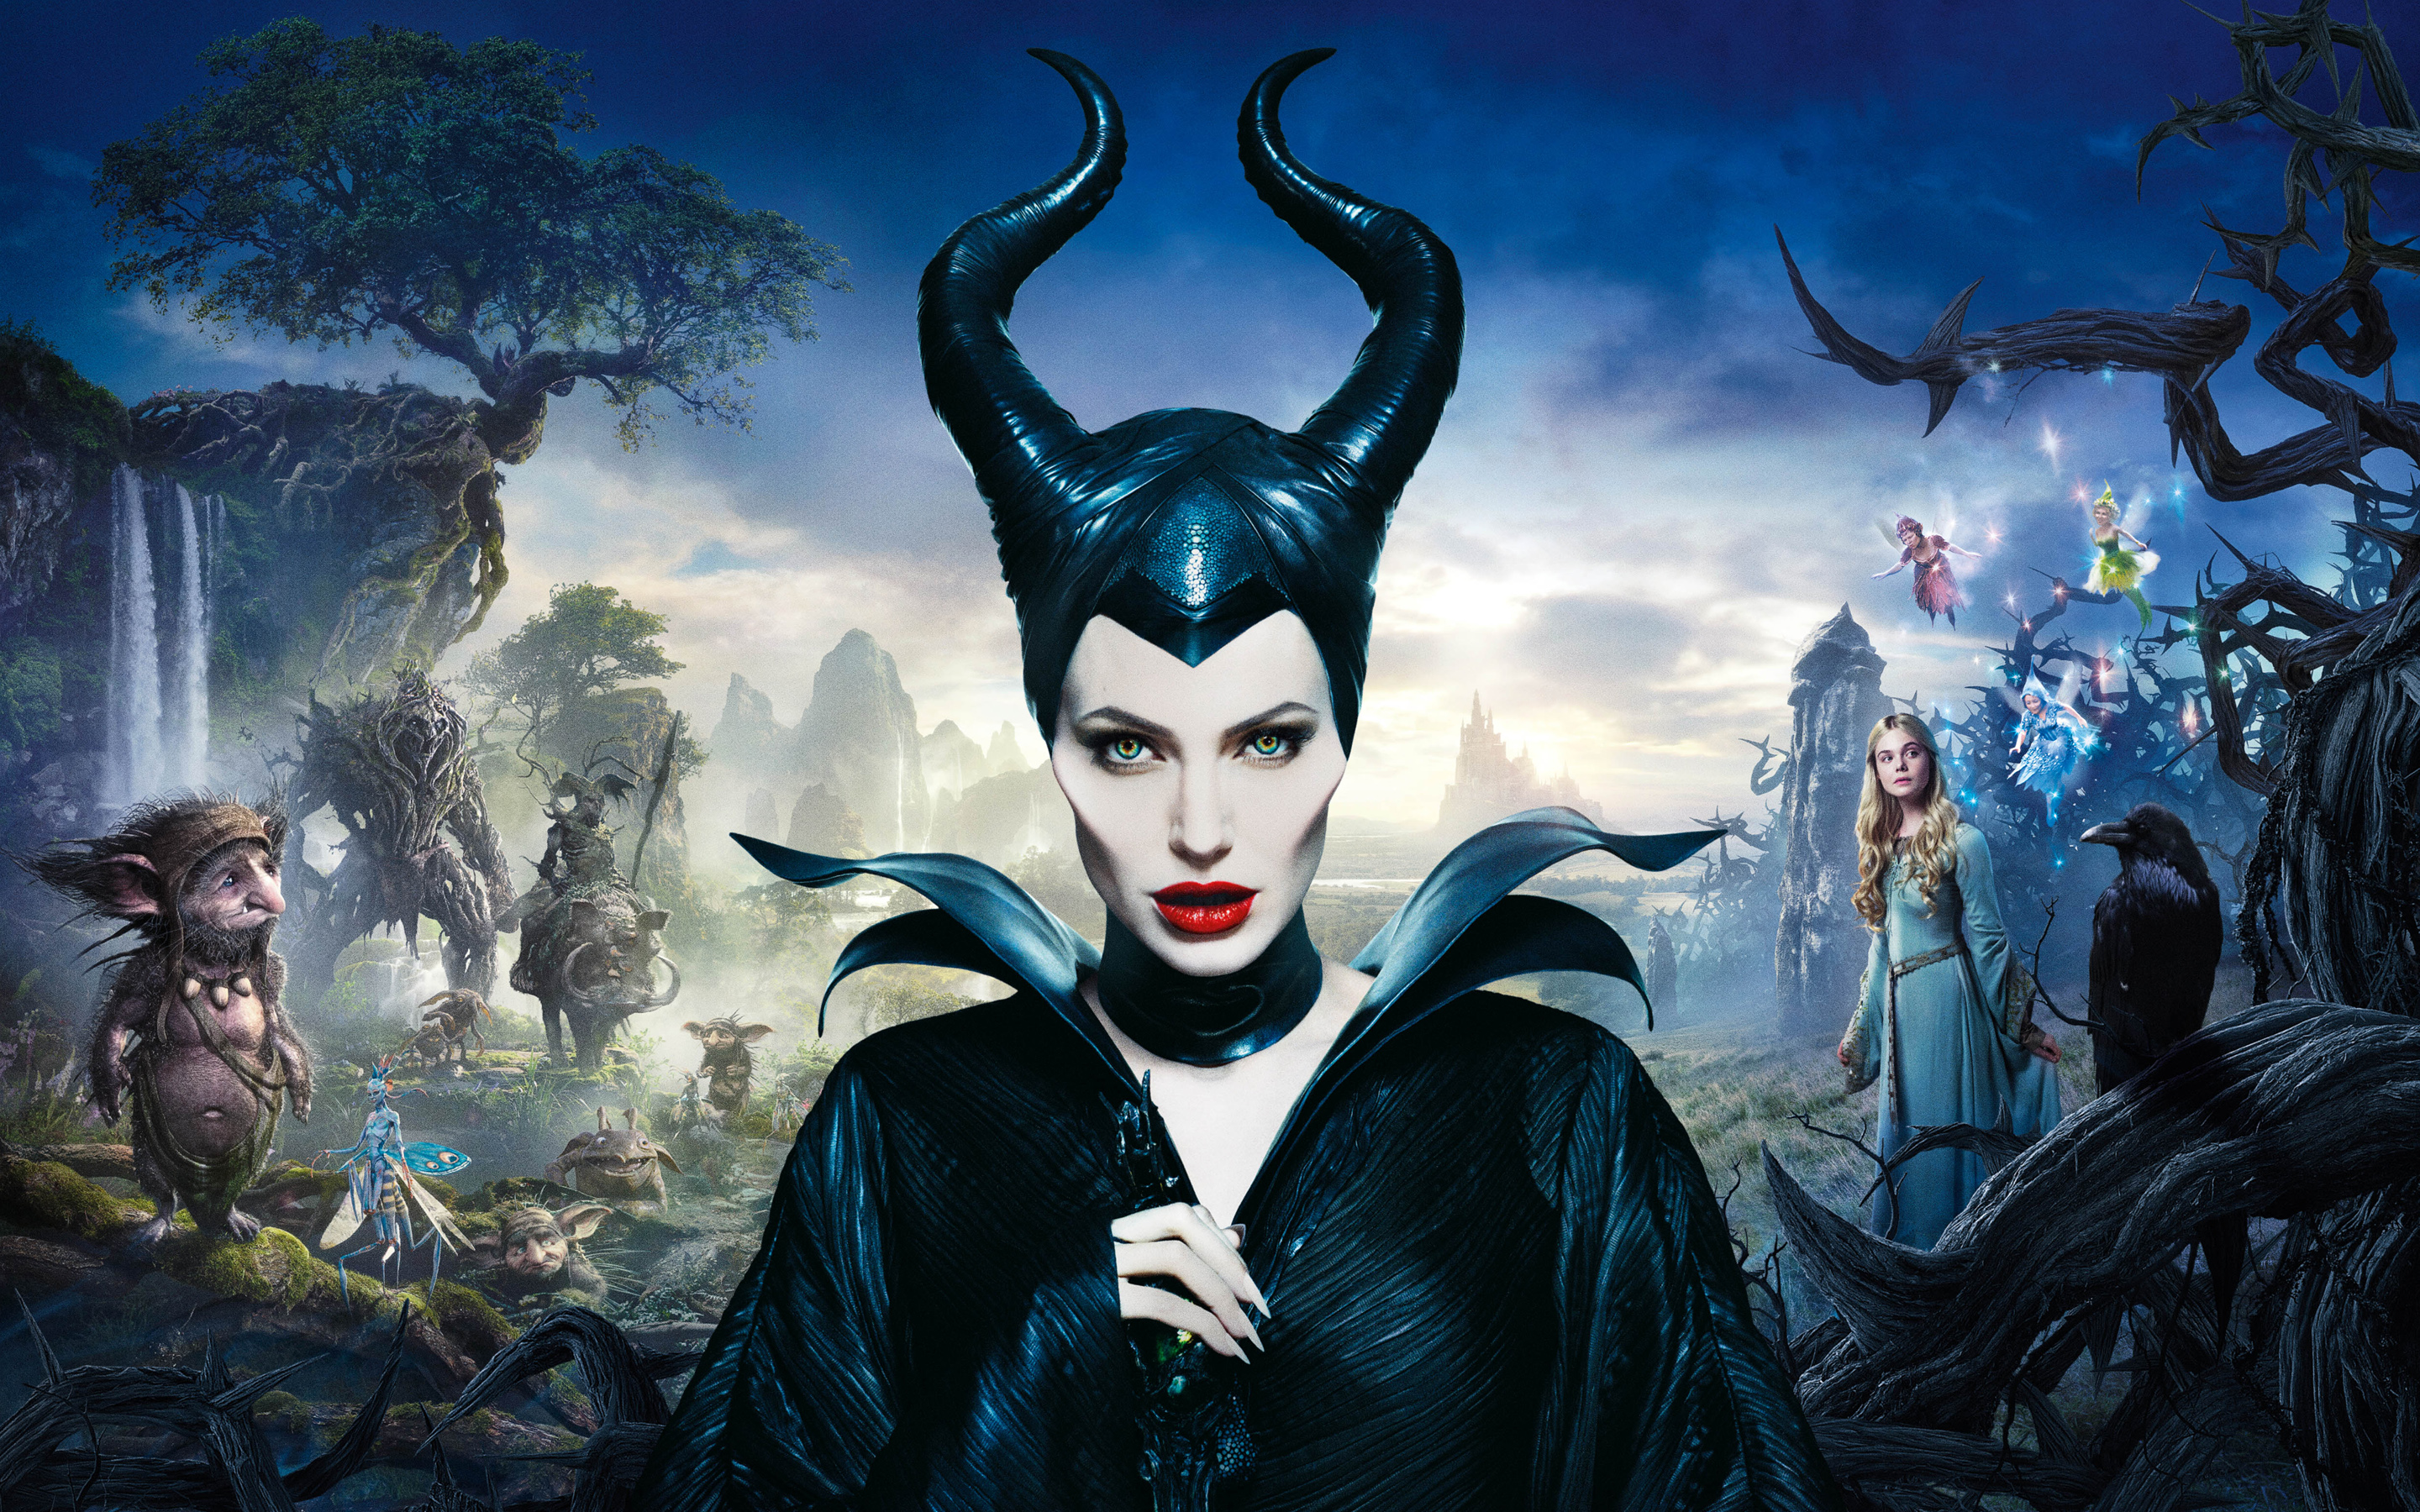 HD Wallpapers Angelina Jolie in Maleficent